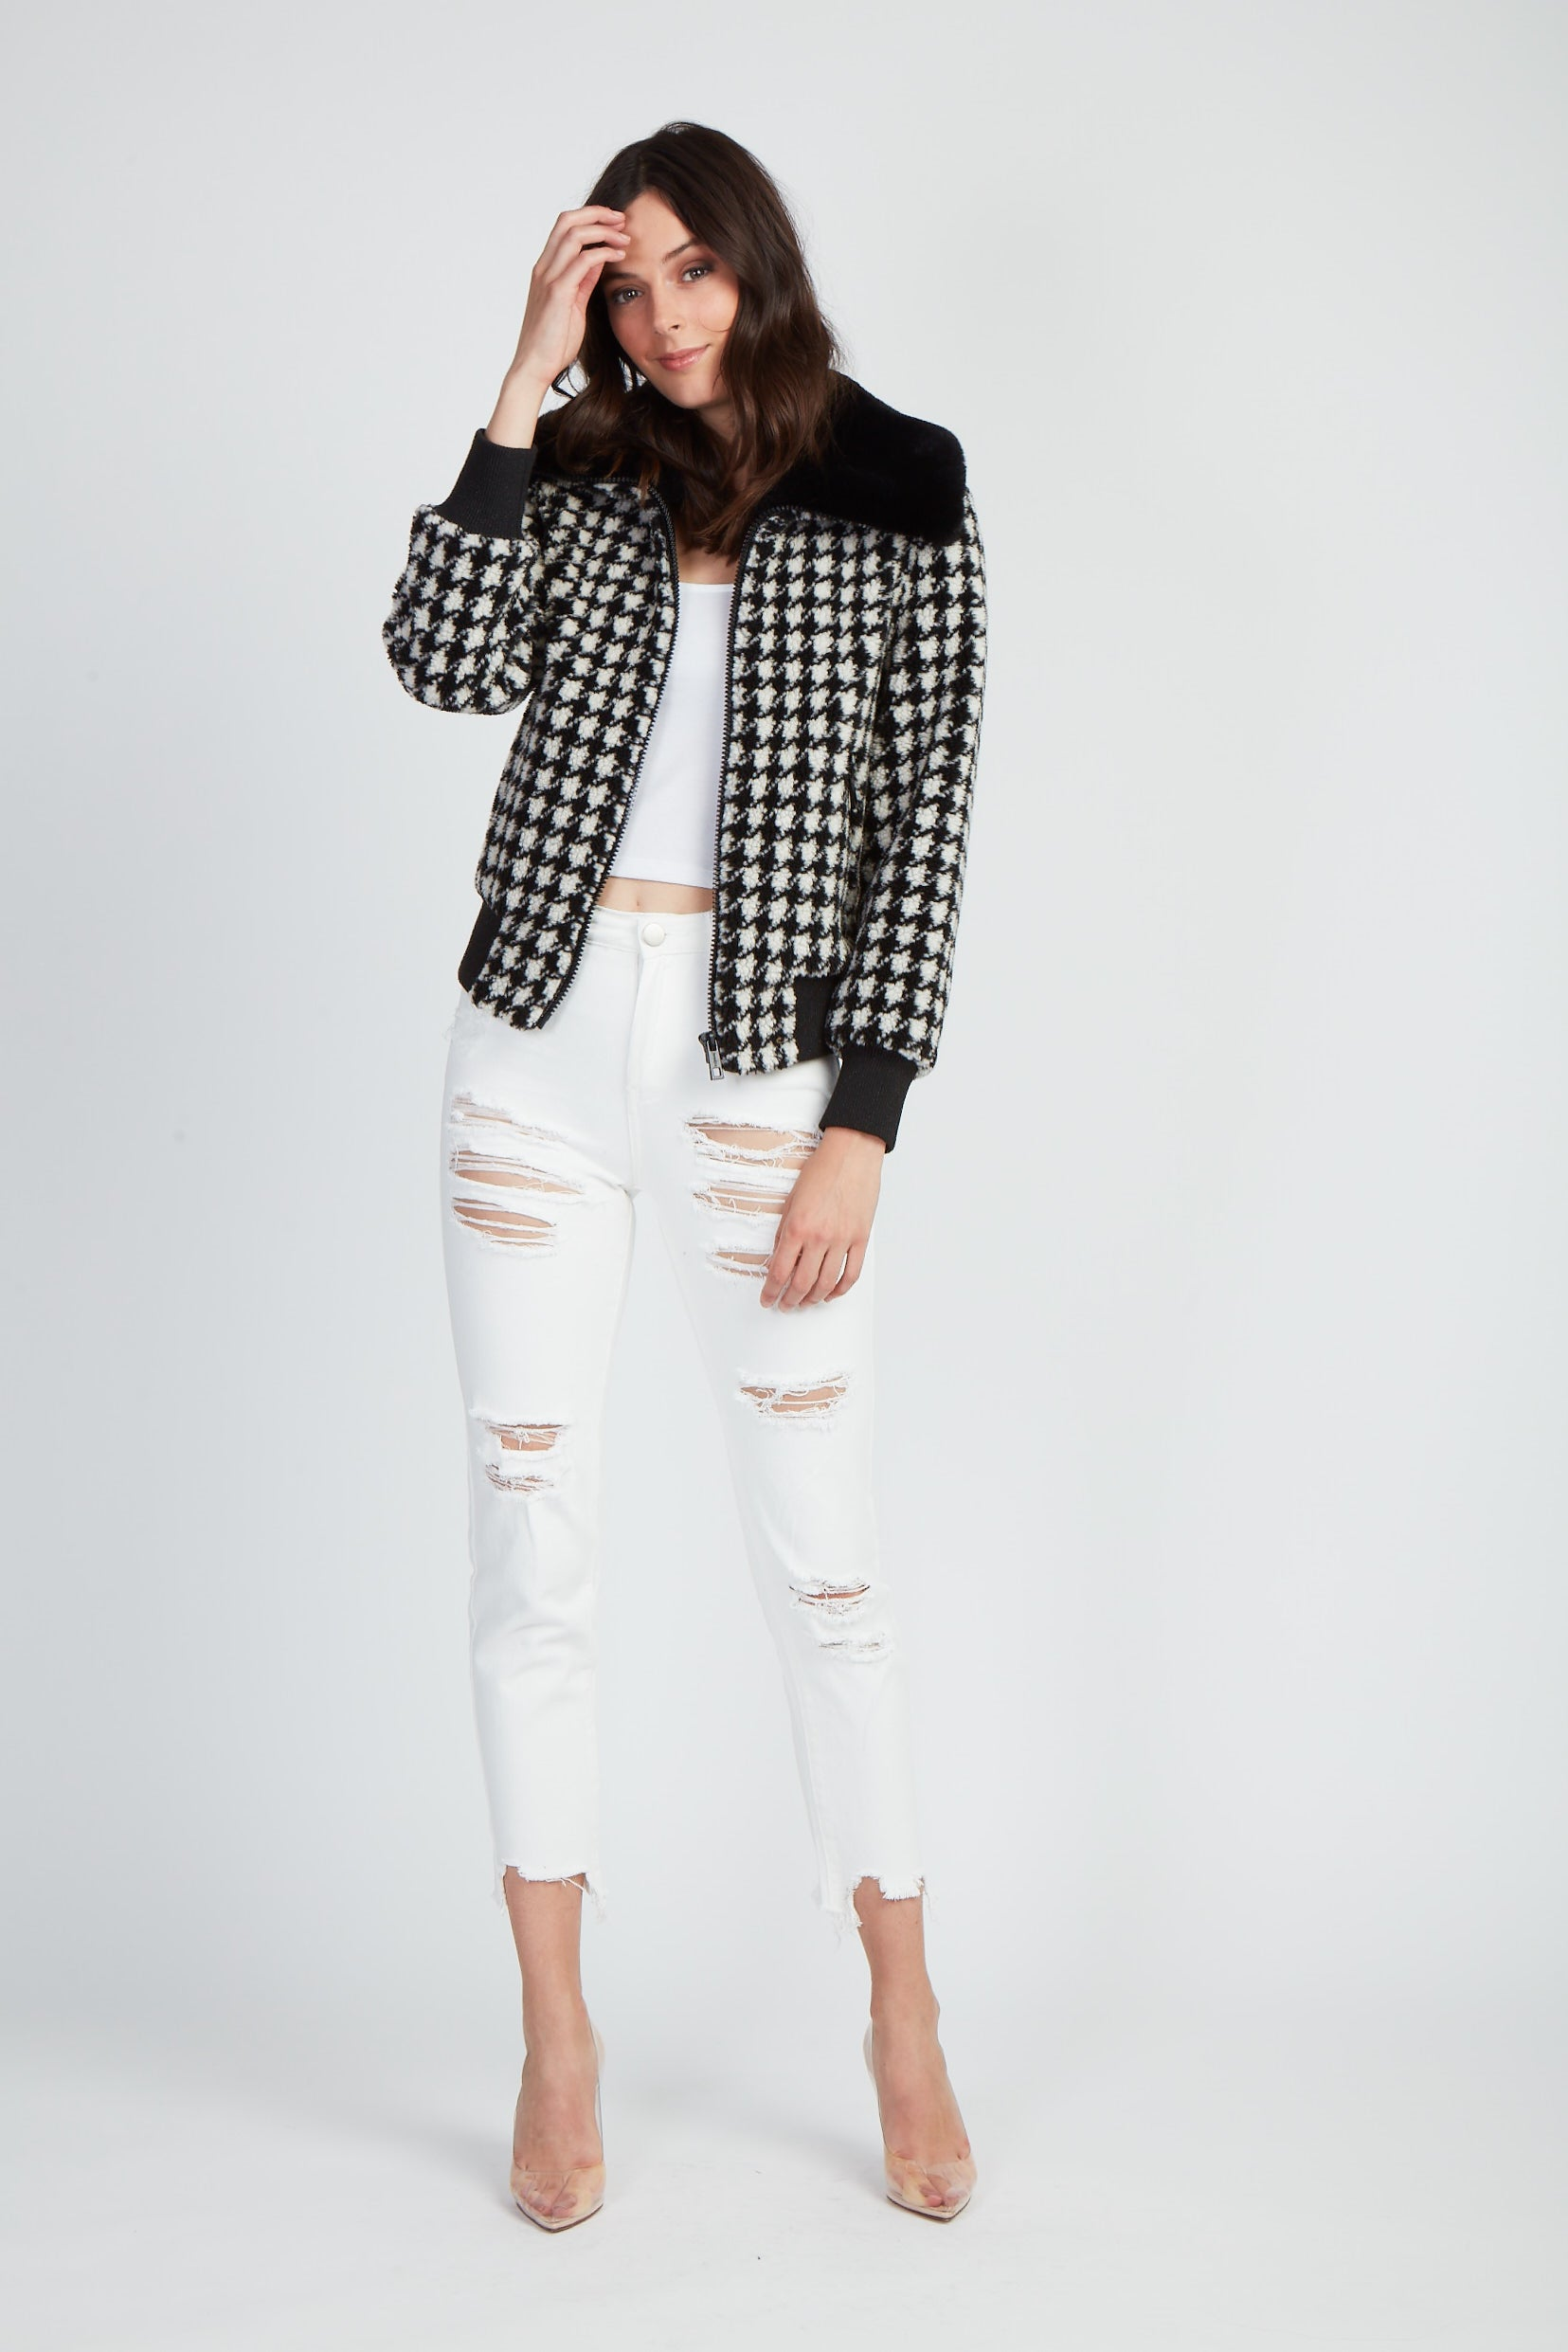 The Made Faux You Bomber Jacket